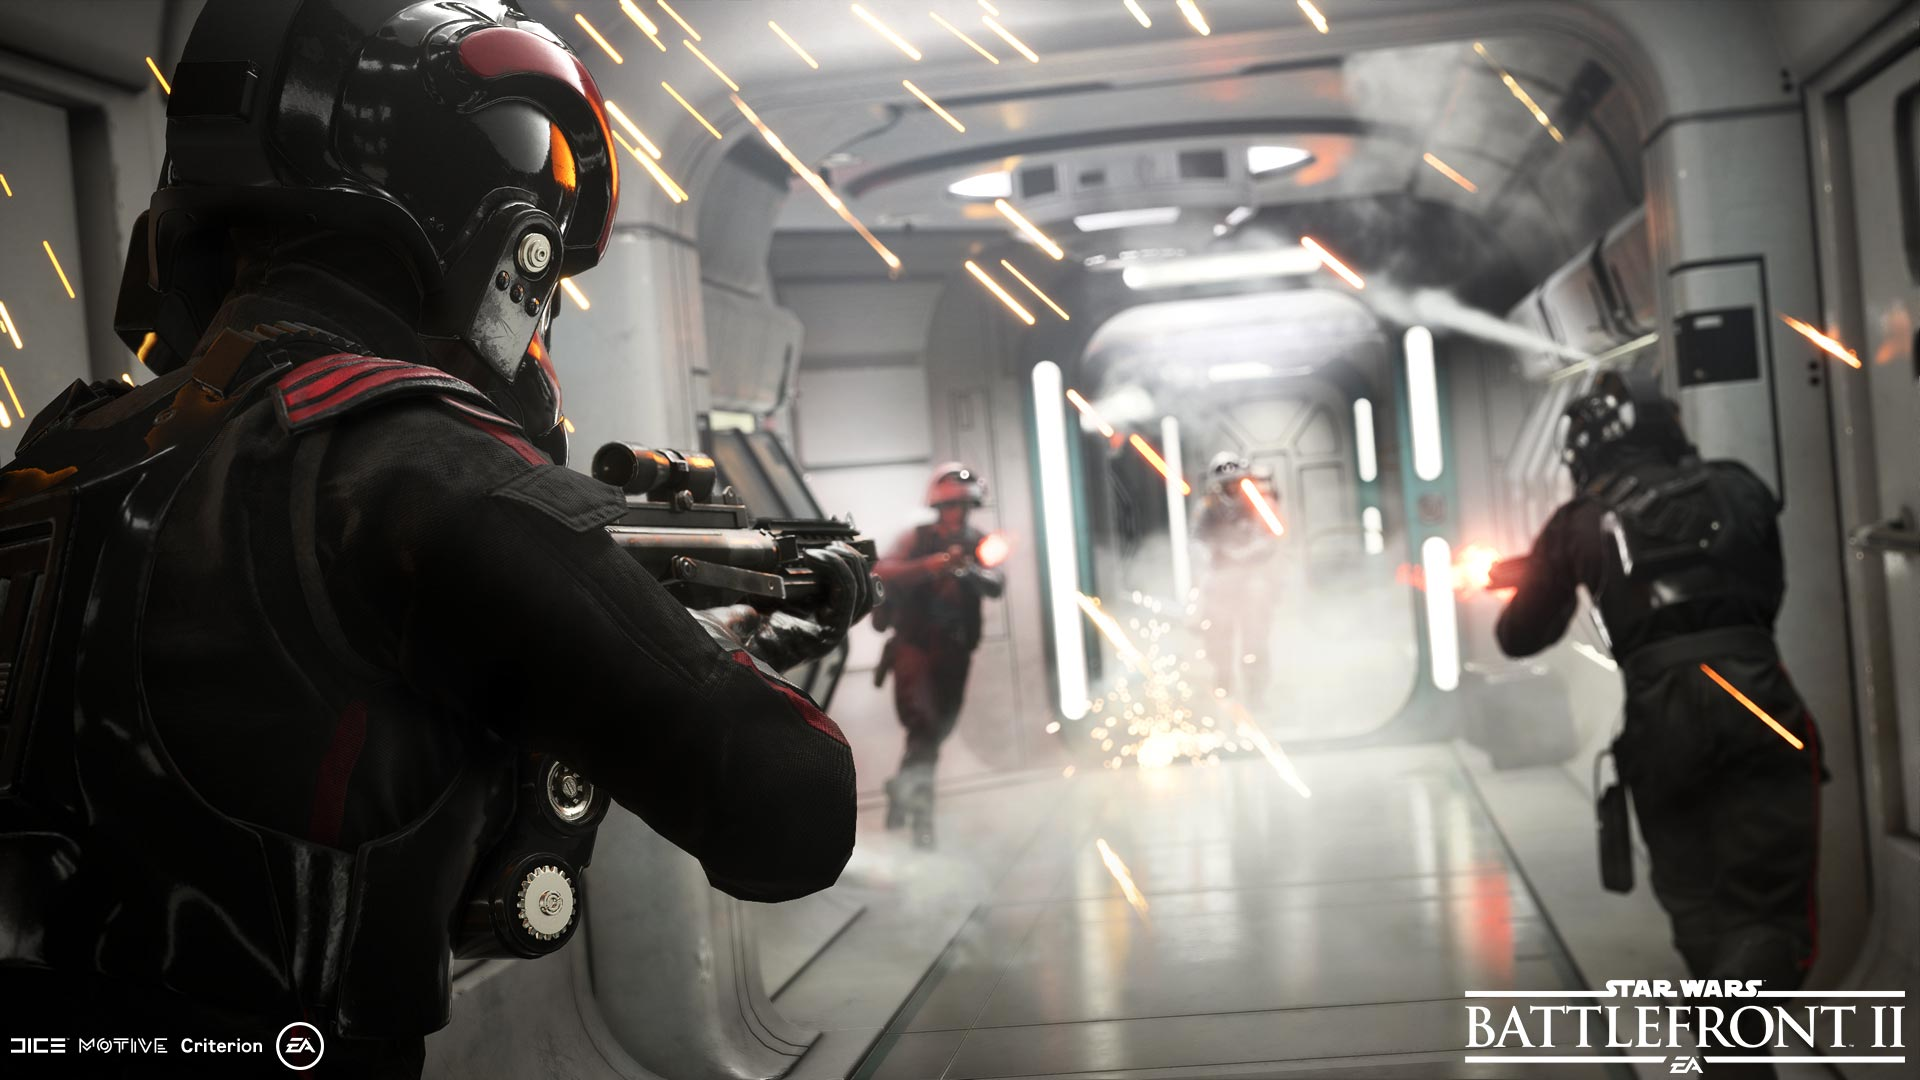 Star Wars: Battlefront 2 - The new roadmap